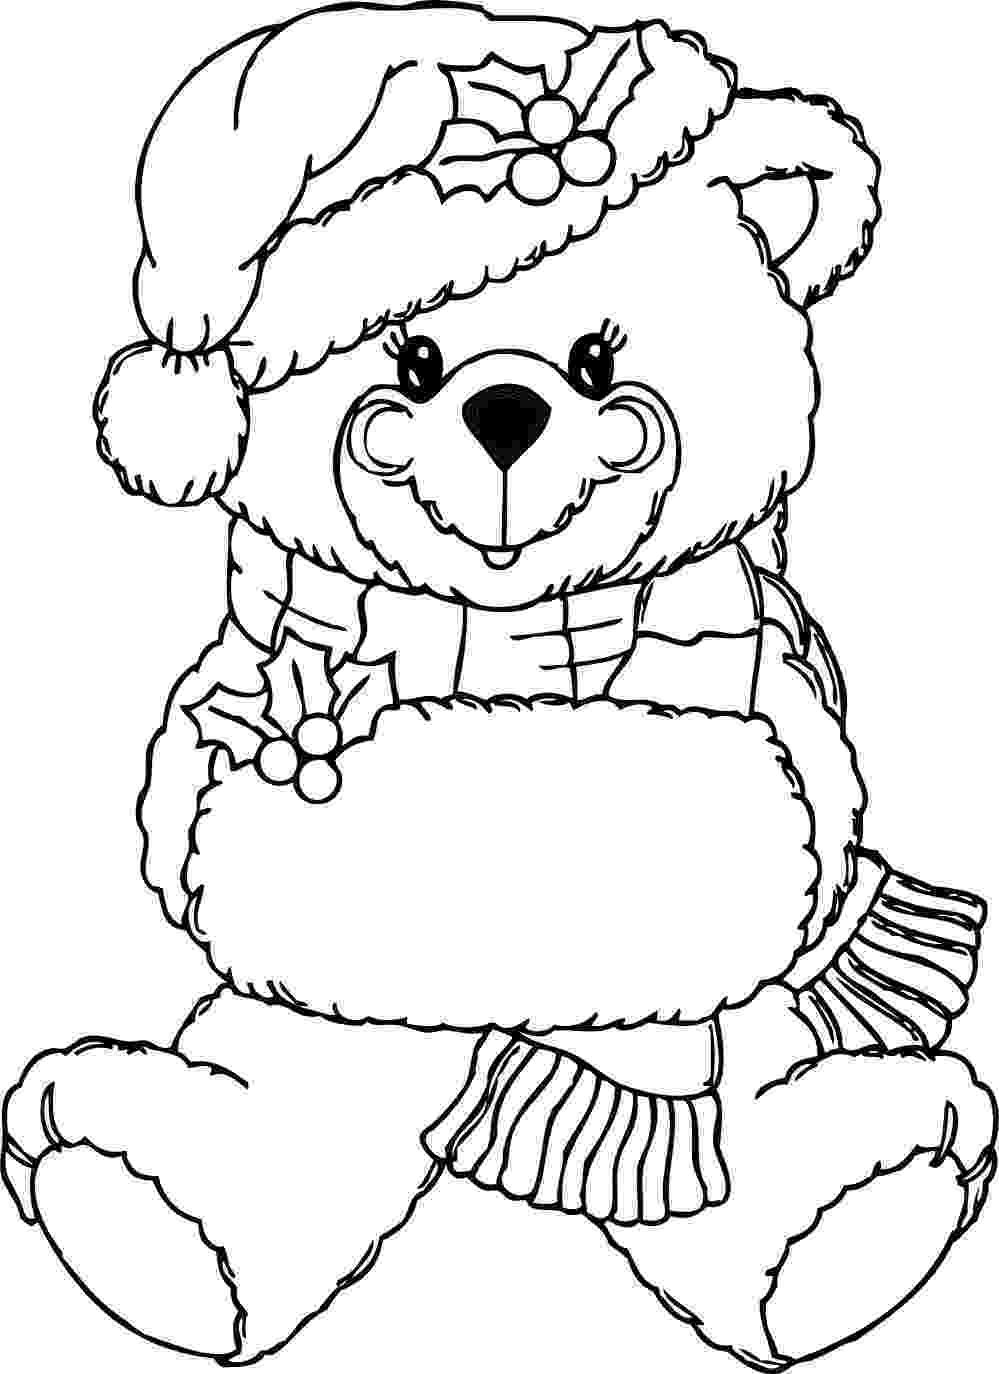 teddy to colour free printable teddy bear coloring pages for kids to colour teddy 1 1